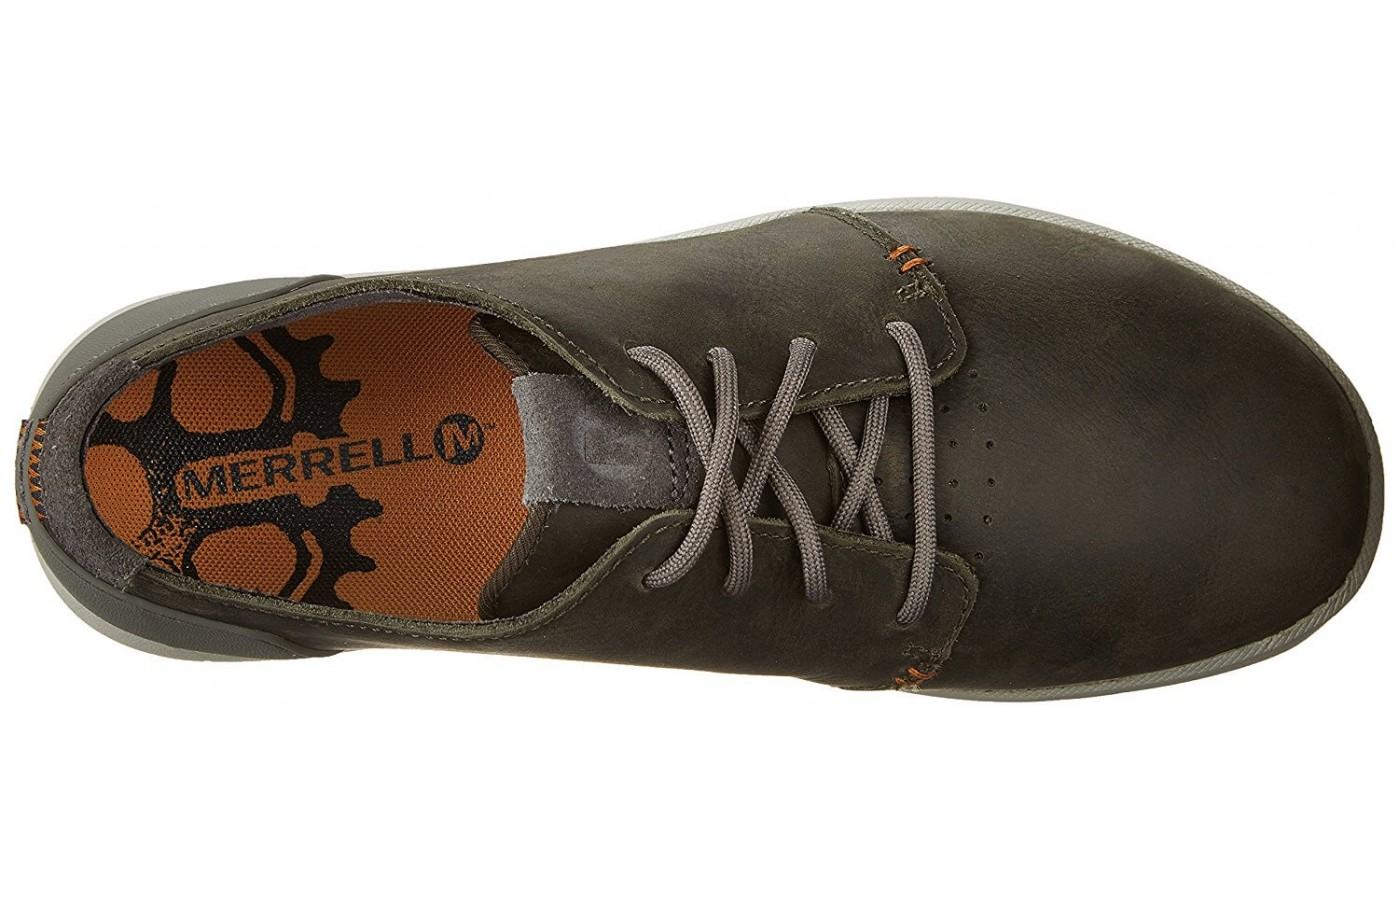 The Merrell Freewheel Lace has an EVA liner